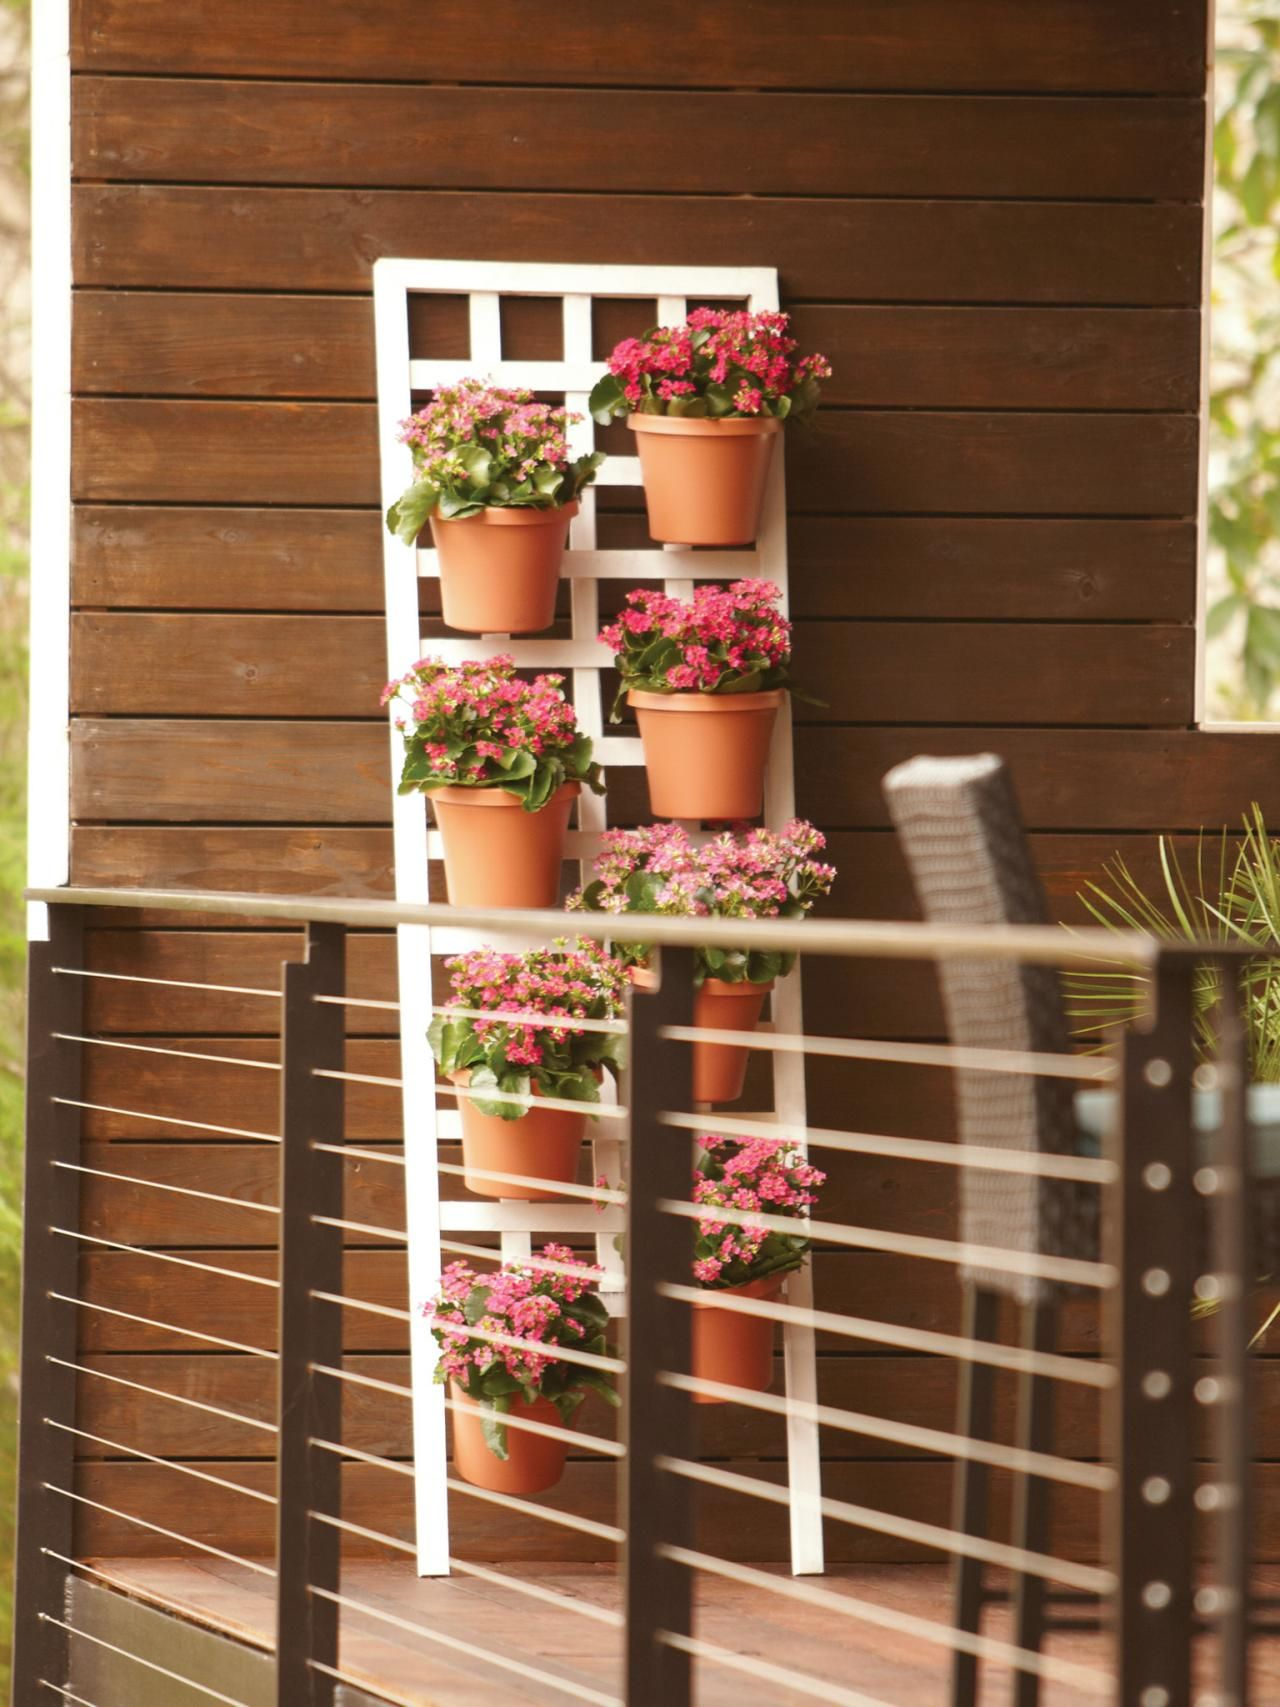 10 Must-Try Vertical Planter Ideas For Summer | Planters, Diy ...